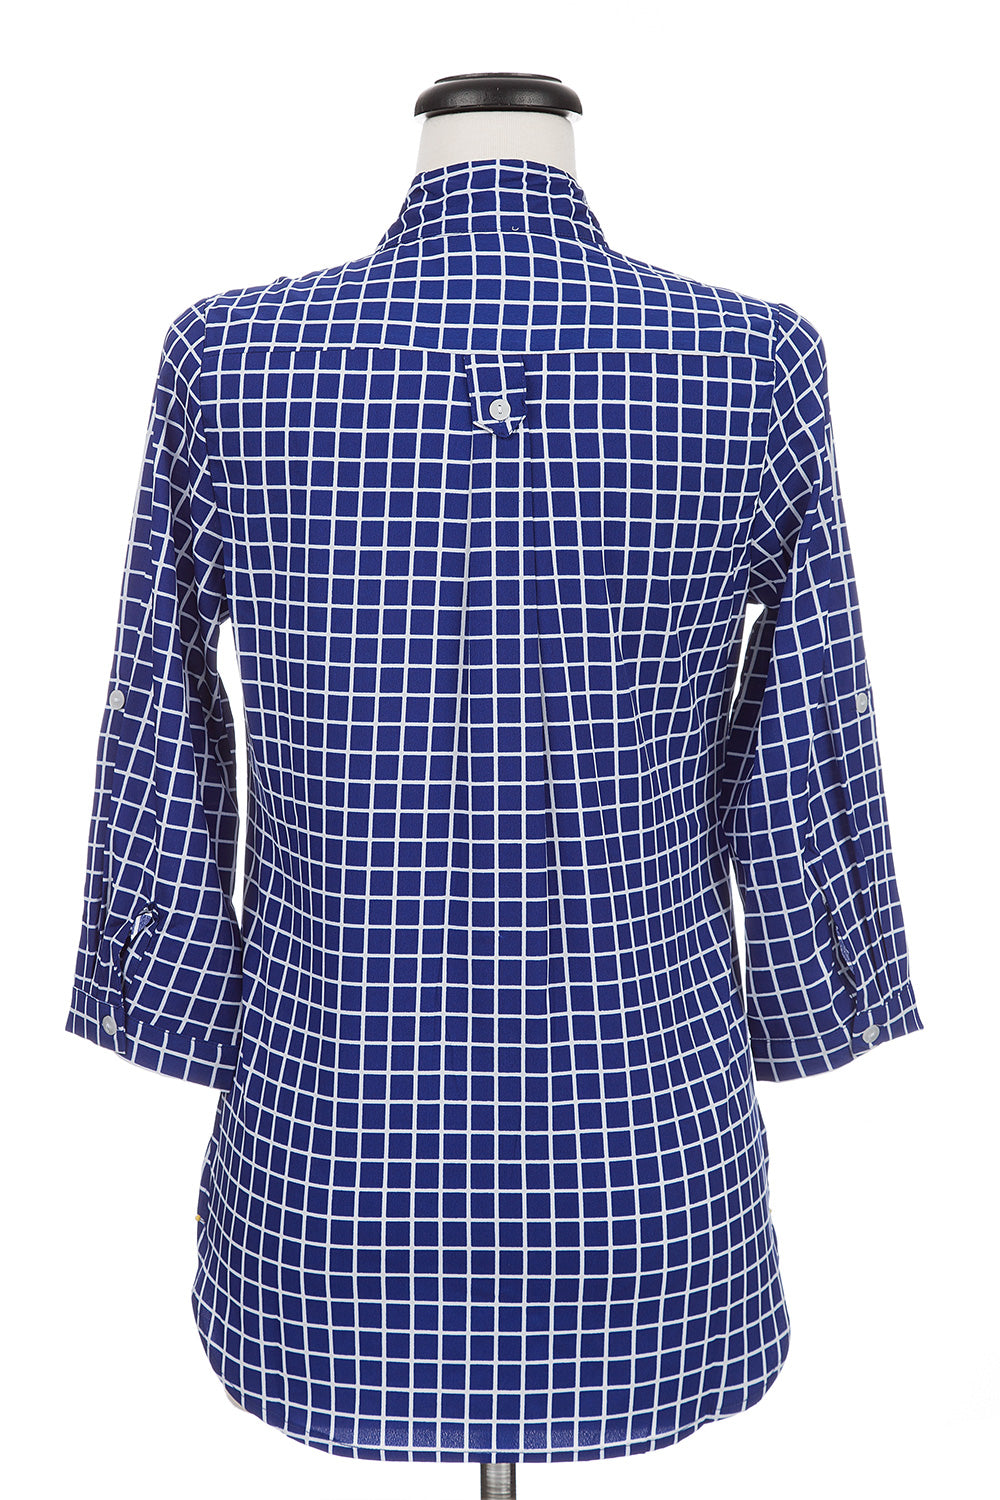 Type 4 Gridlock Top in Blue